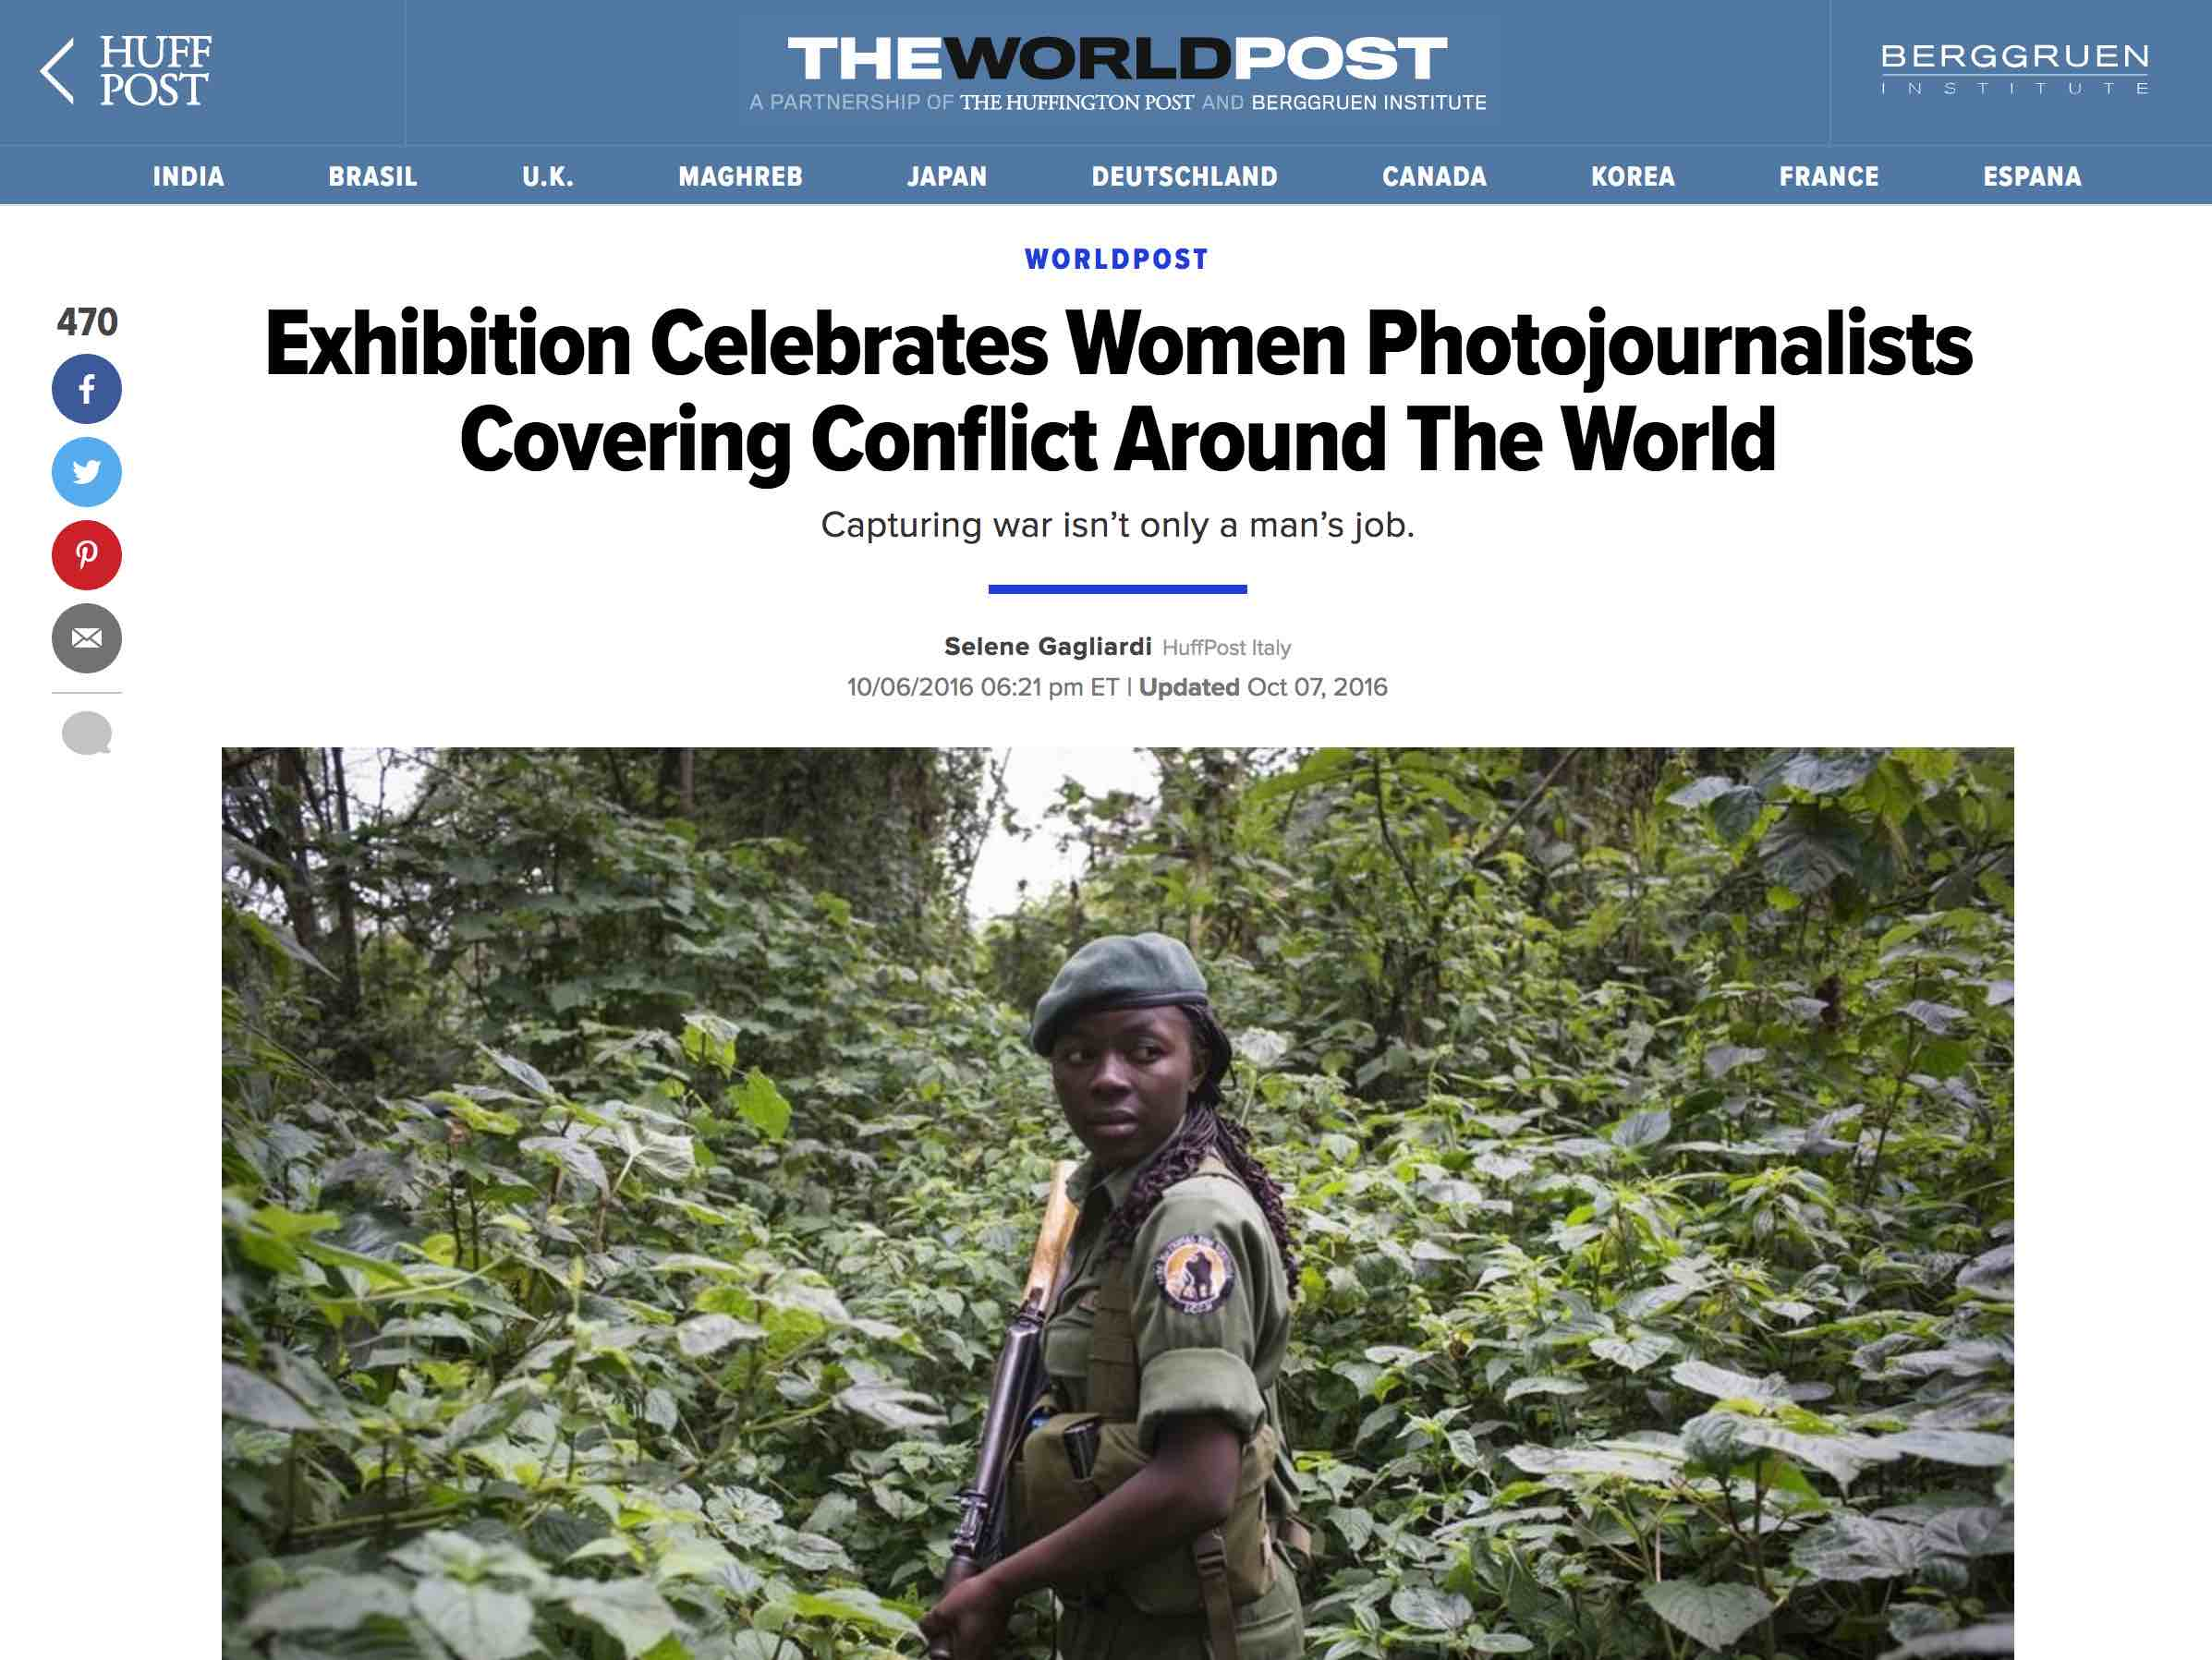 CLICK on title to link to full article     Exhibition celebrates women photojournalists covering conflict around the world  | Huffington Post, Oct 06, 2016